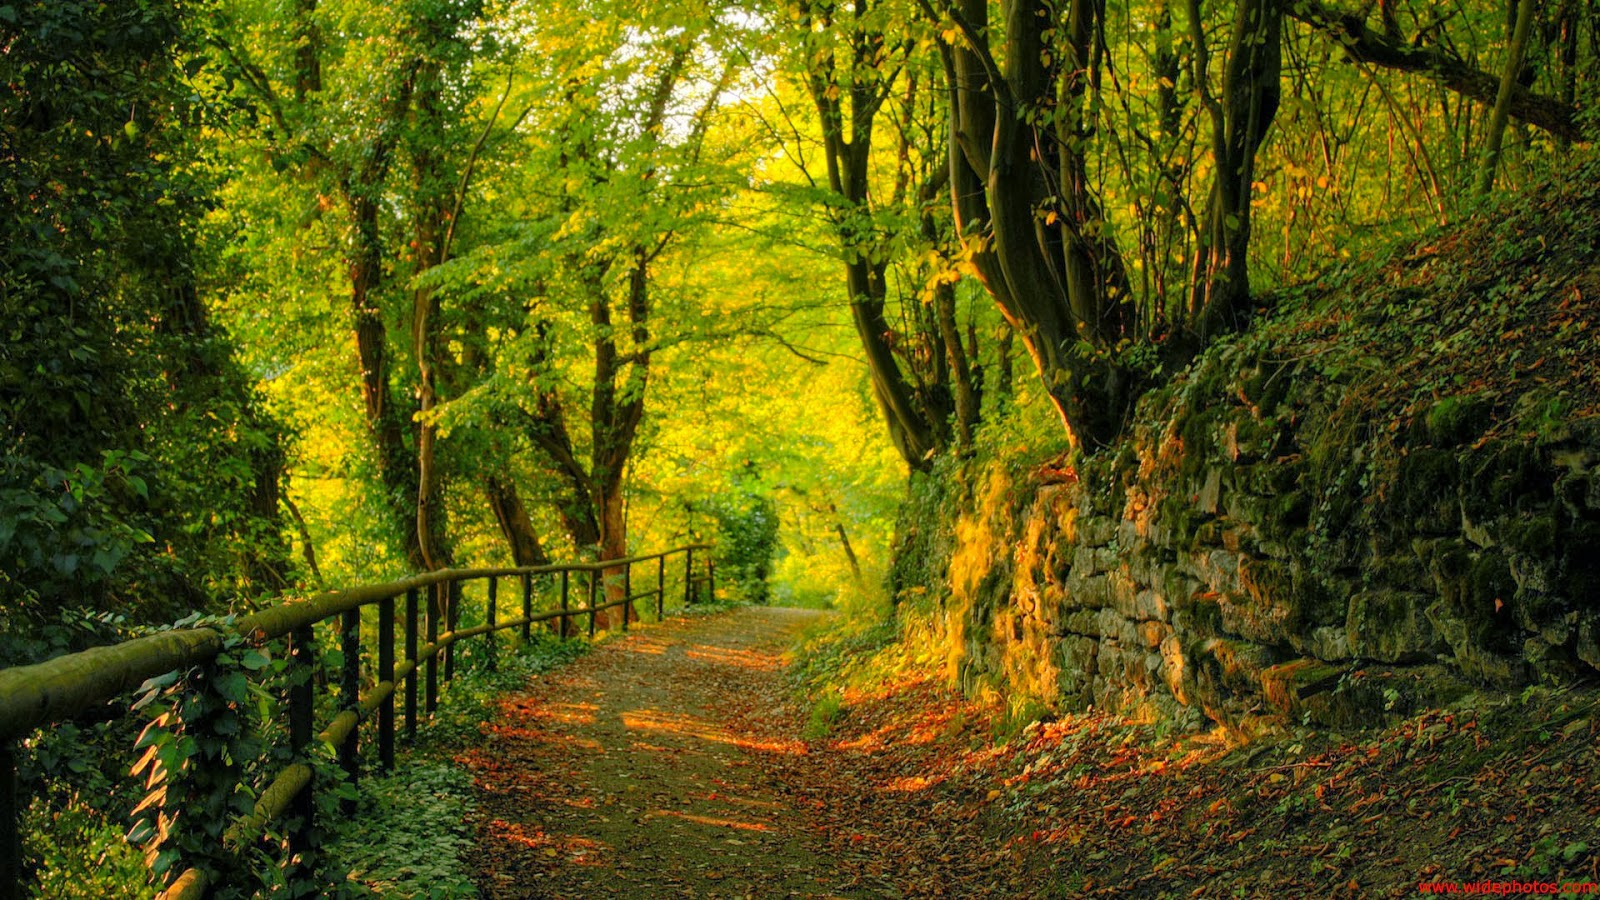 hd wallpapers 1080p forest nice pics gallery